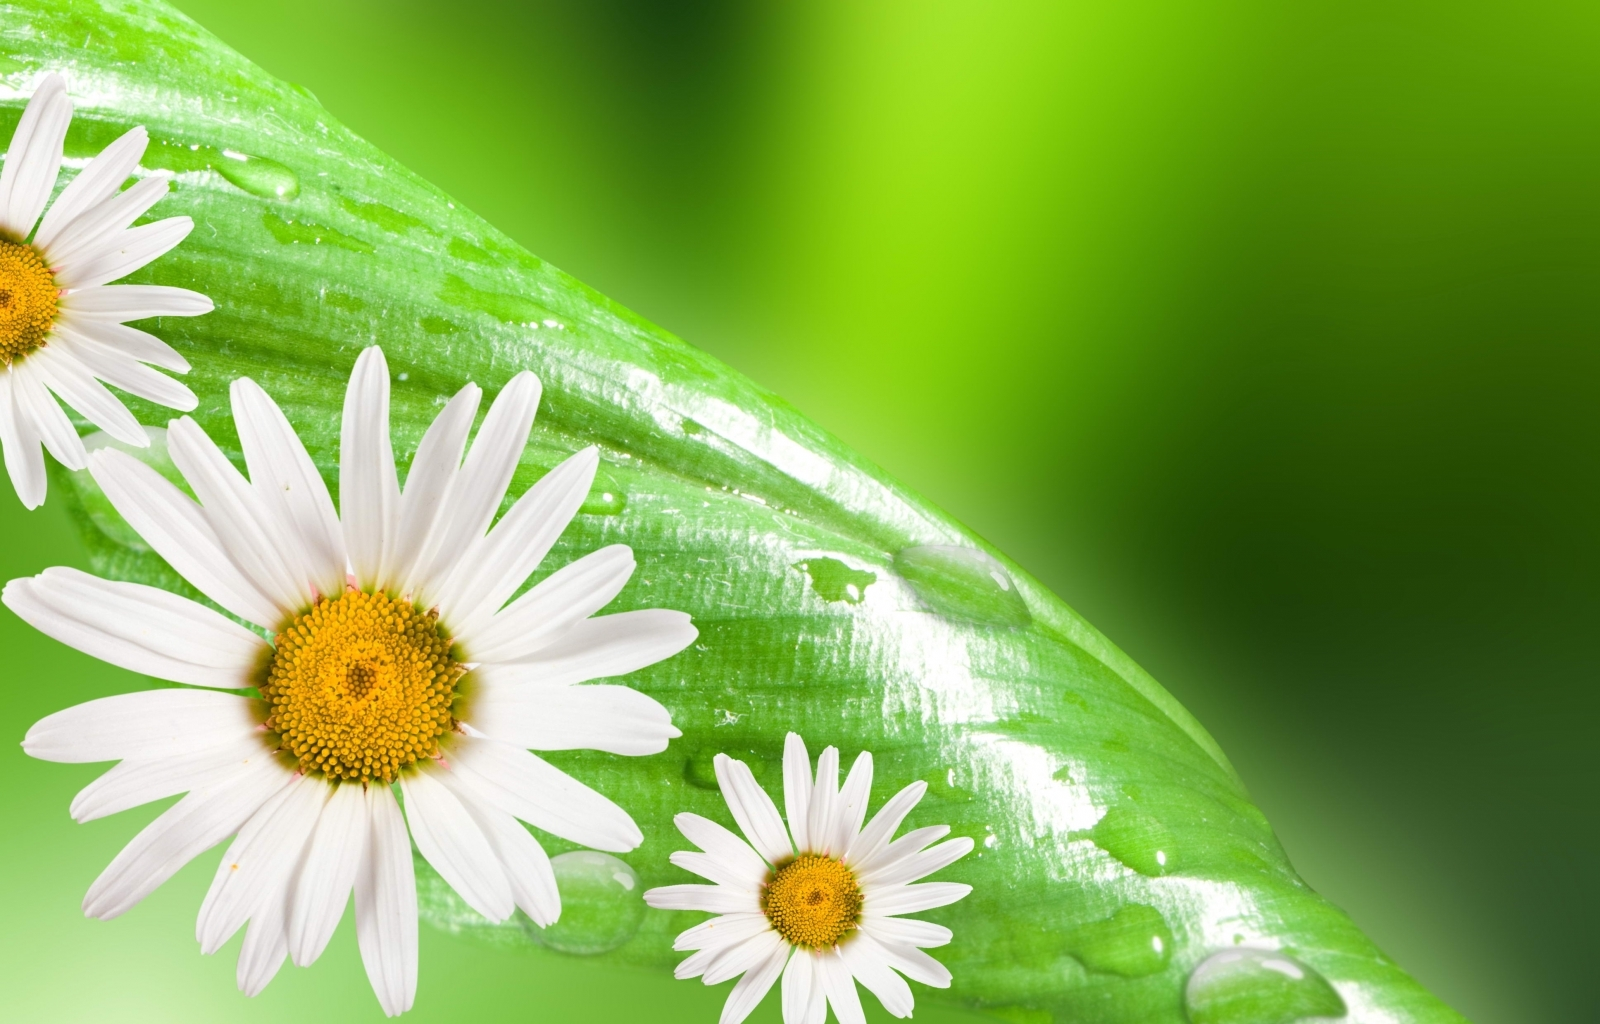 26800 download wallpaper Plants, Flowers, Background, Leaves, Camomile screensavers and pictures for free